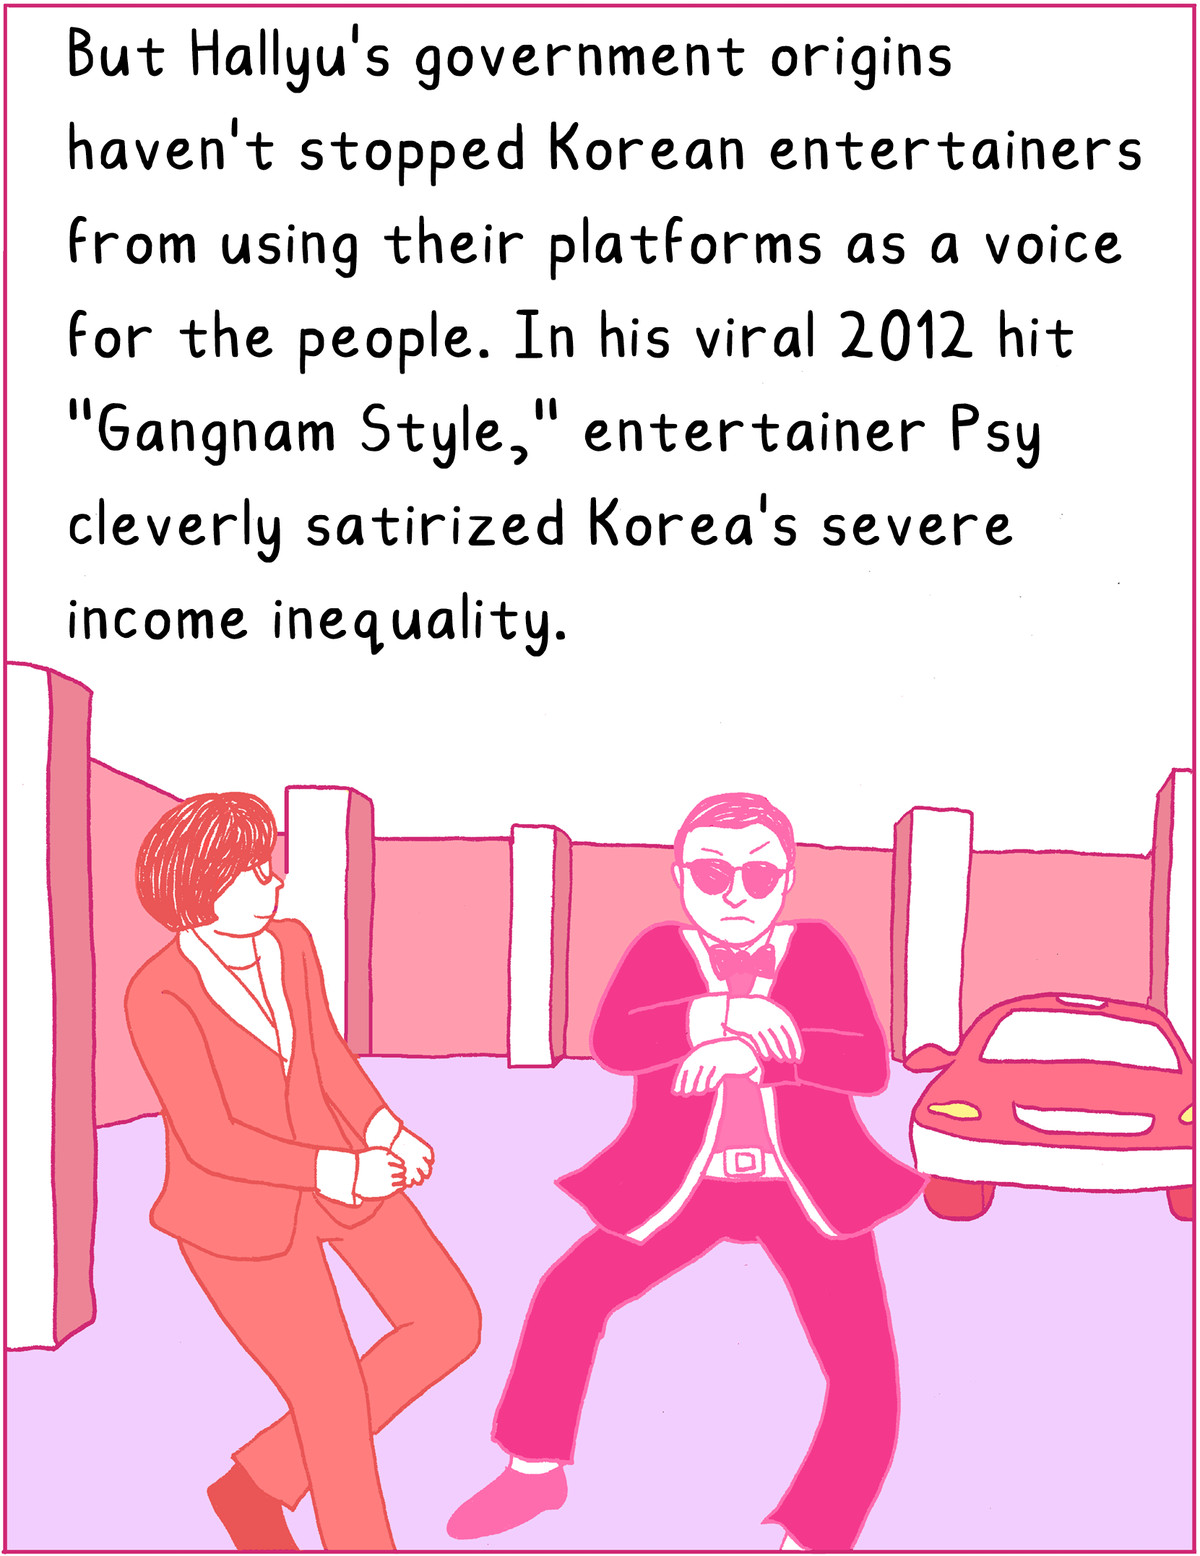 """But Hallyu's government origins haven't stopped Korean entertainers from using their platforms as a voice for the people. In his viral 2012 hit, """"Gangnam Style,"""" entertainer Psy cleverly satirized Korea's severe income inequality."""